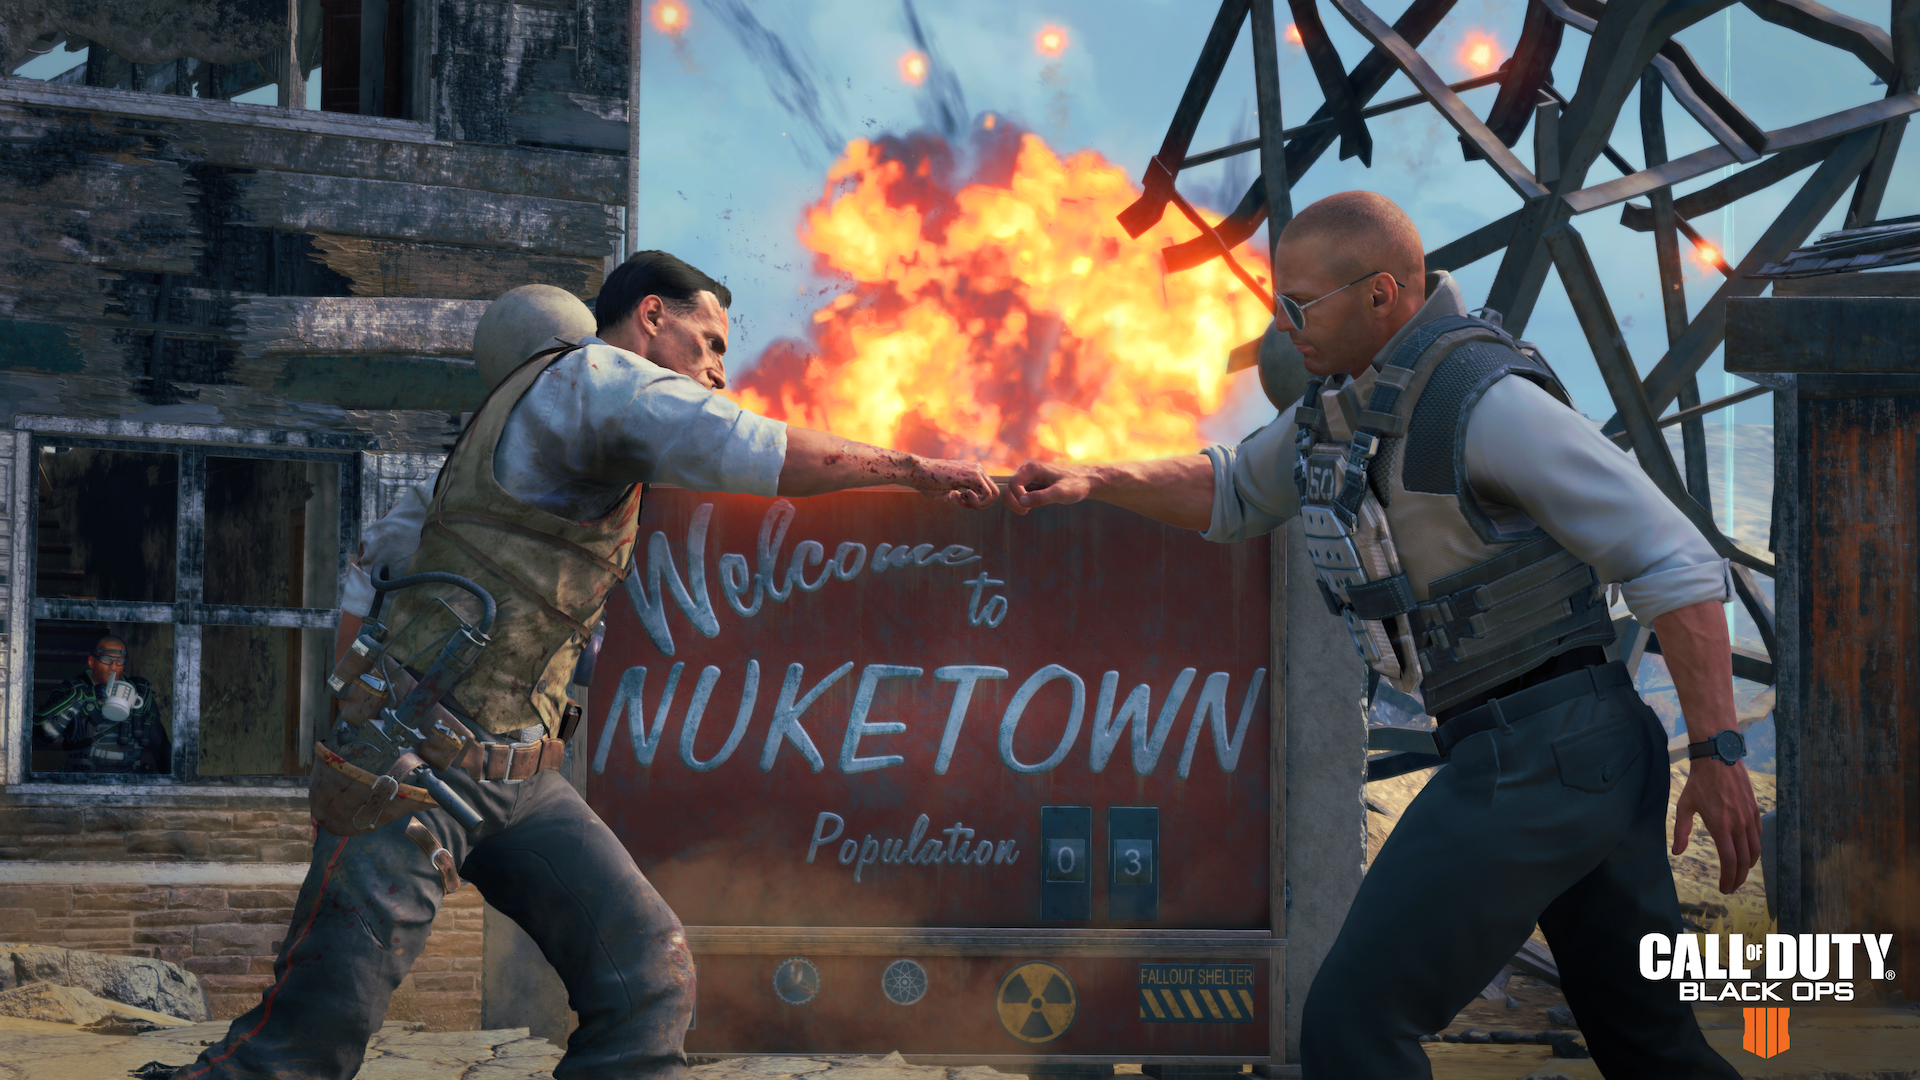 Black Ops 4 Patch Update Version 1 12 Goes Live January 29 Charlie Intel